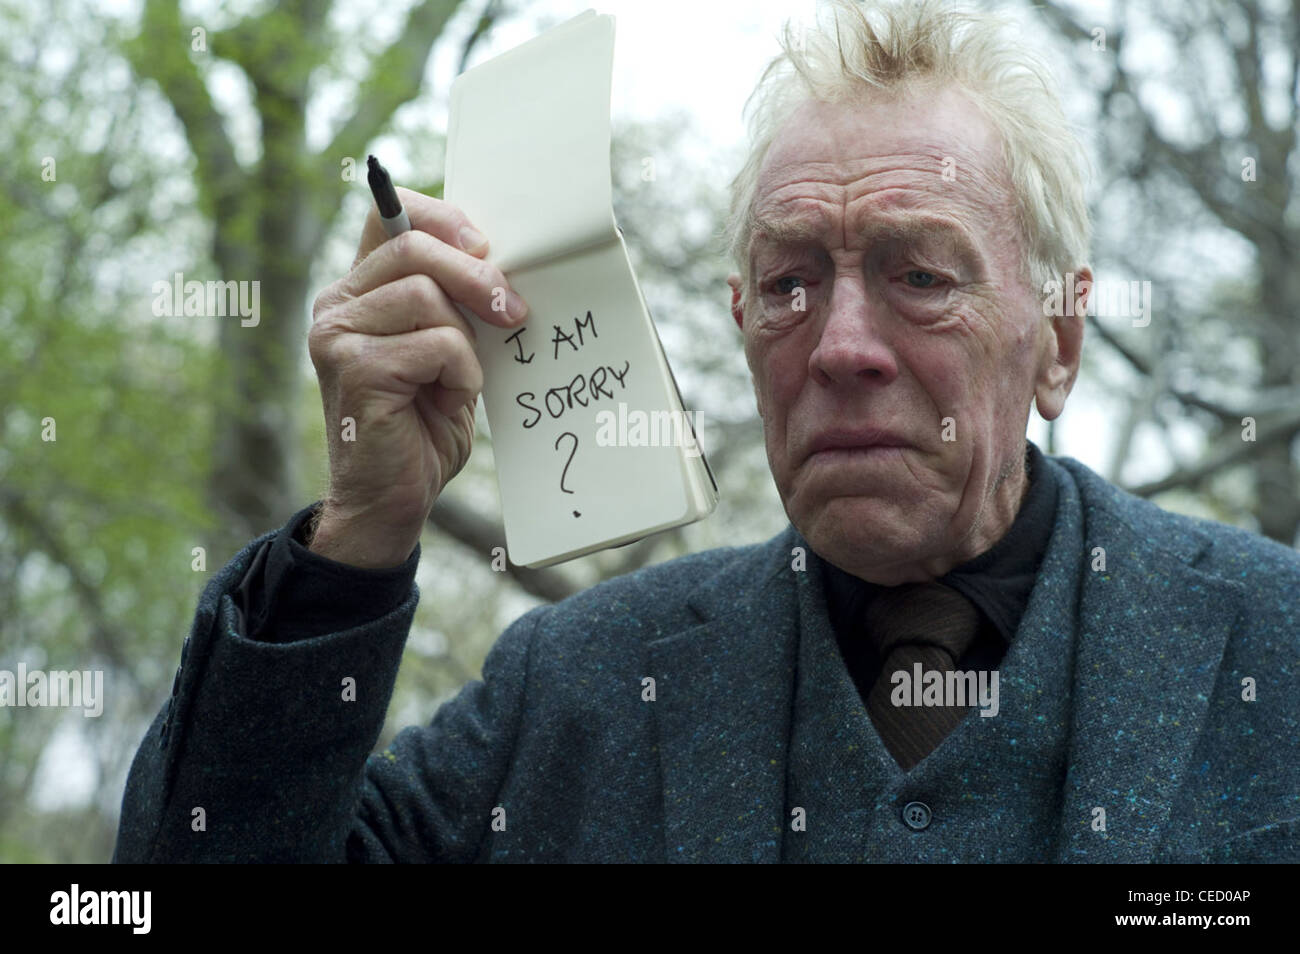 EXTREMELY LOUD AND INCREDIBLY CLOSE (2011) MAX VON SYDOW STEPHEN DALDRY (DIR) 004 MOVIESTORE COLLECTION LTD - Stock Image